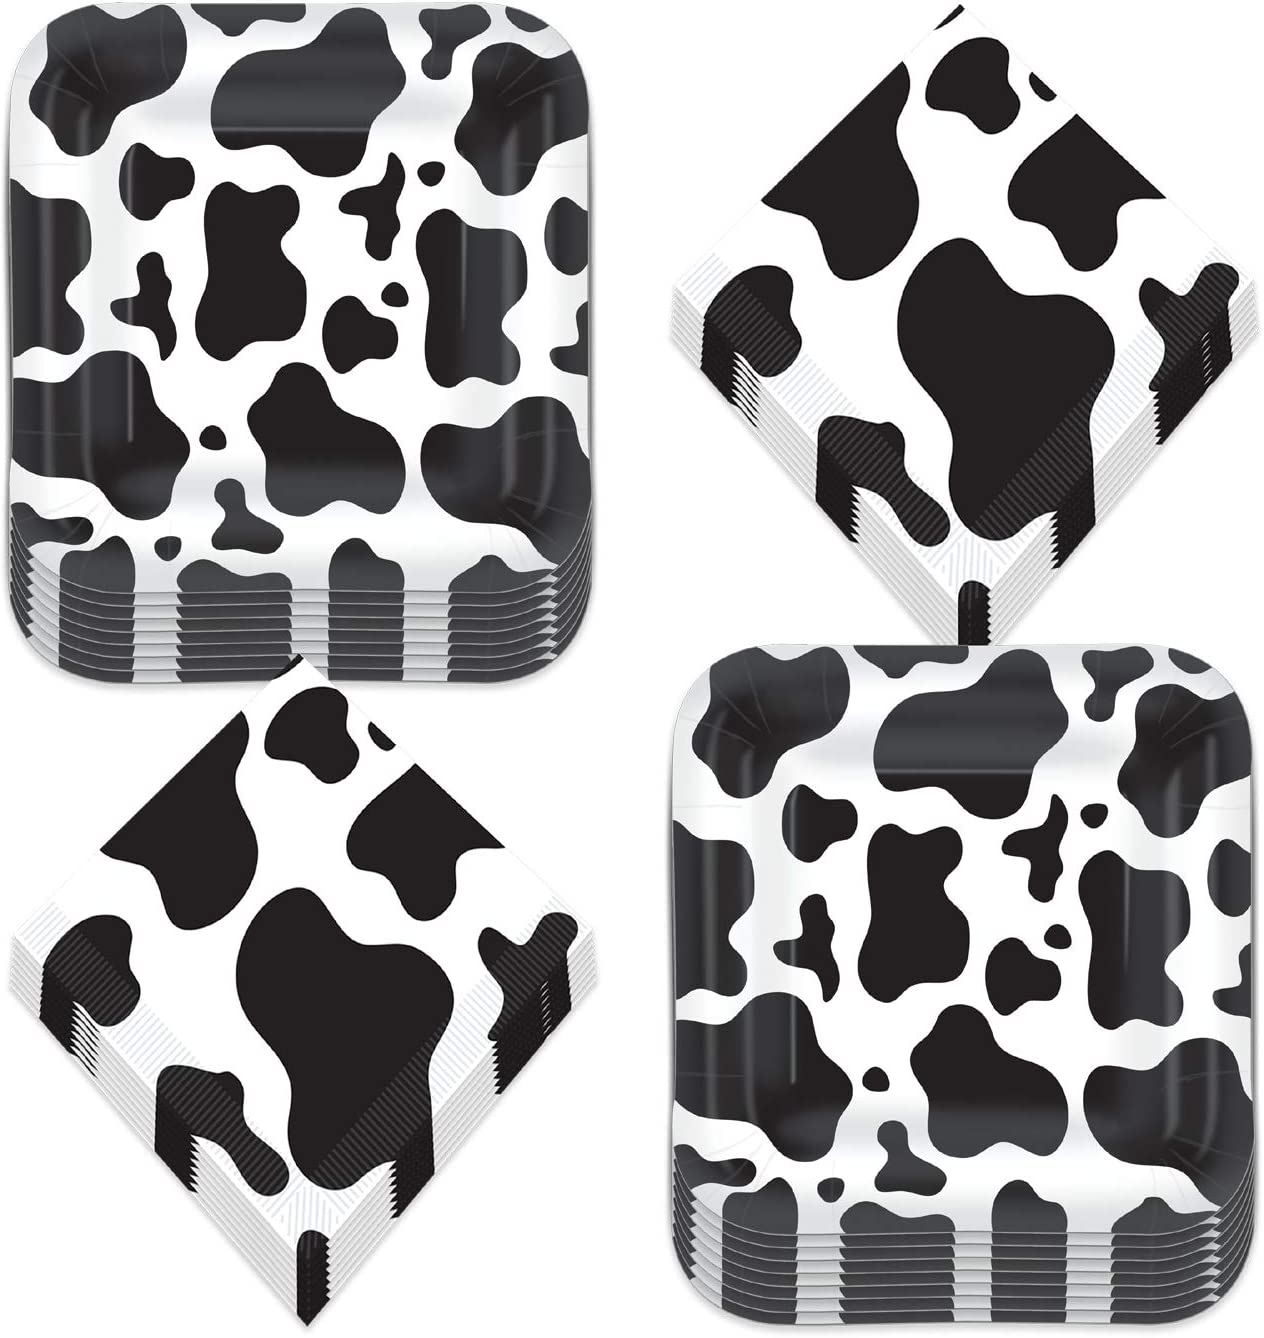 Cow Print Party Supplies - Black and White Cow Print Paper Dessert Plates and Beverage Napkins for Western and Farm Animal Theme Parties (Serves 16)